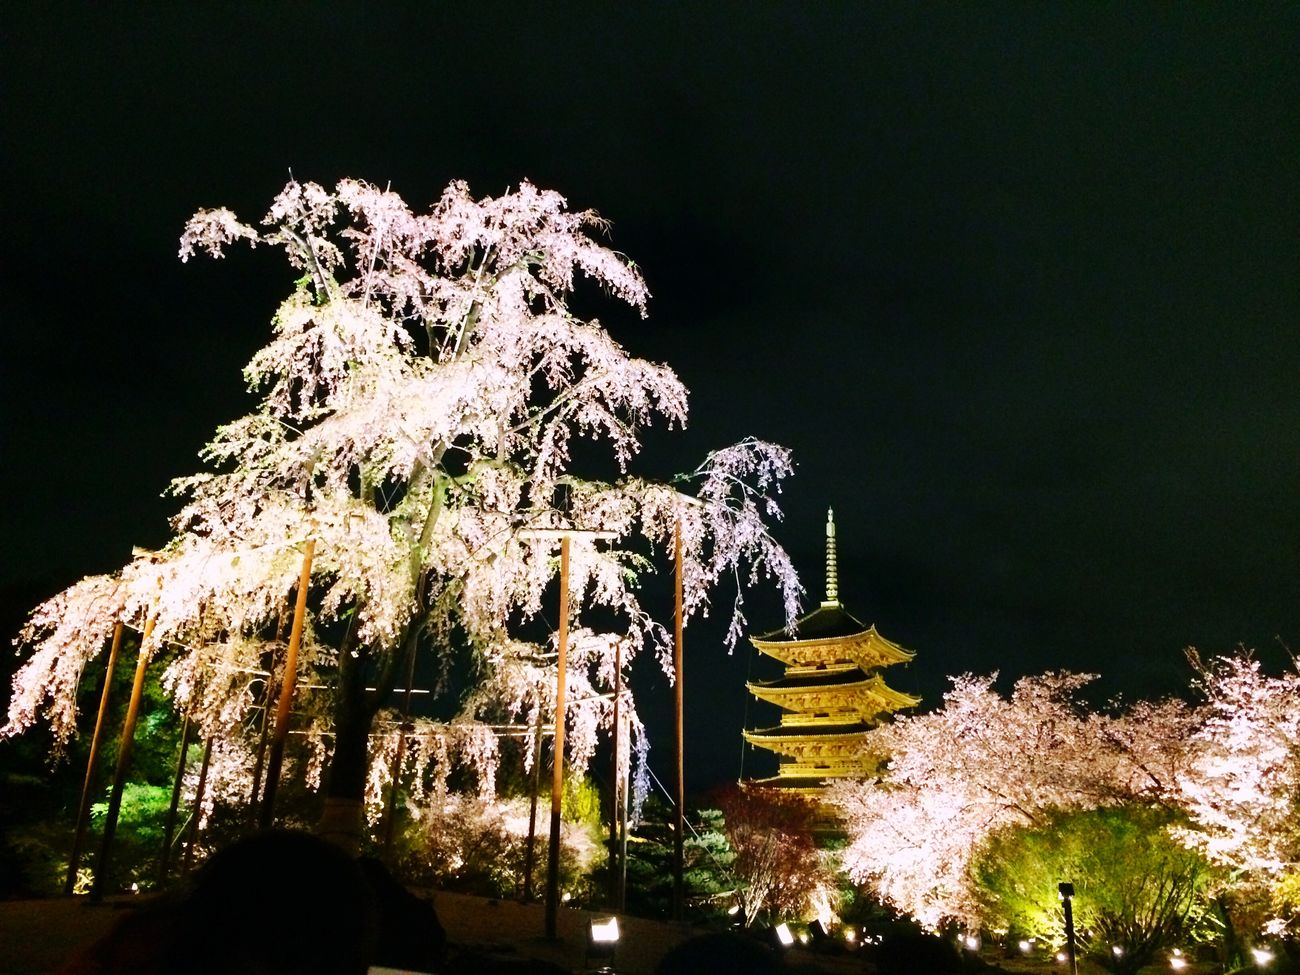 枝垂れ桜 Kyoto Japan Temple Toji Temple Cherry Blossoms Weeping Cherry Tree Five-storied Pagoda Japanesebeauty